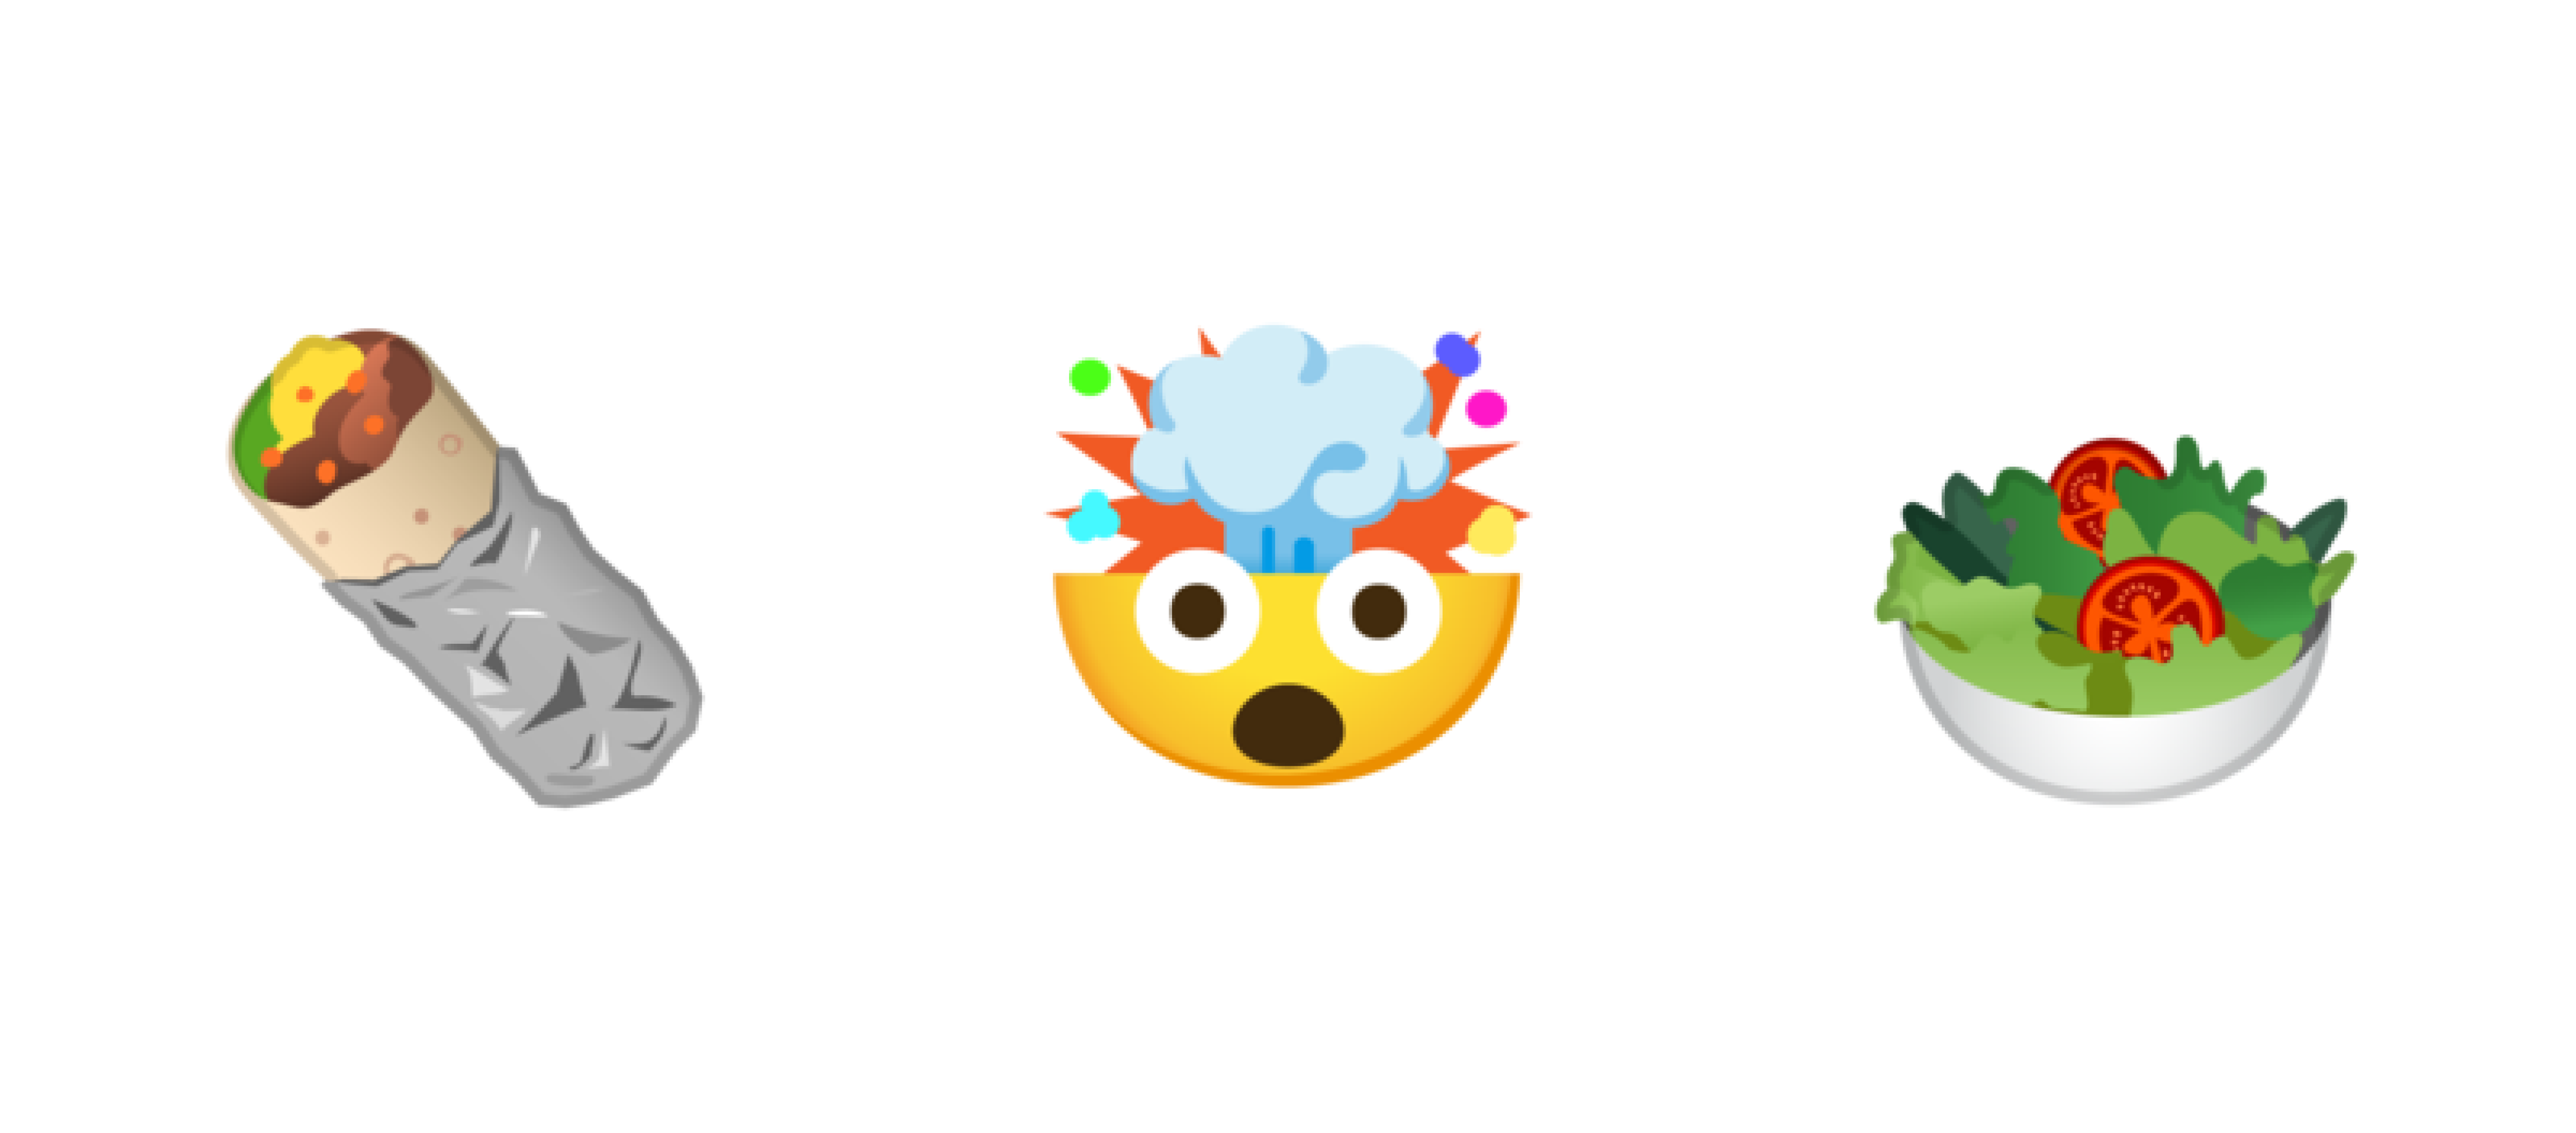 The 3 Google emojis mentioned above: burrito, mind-blown, and salad